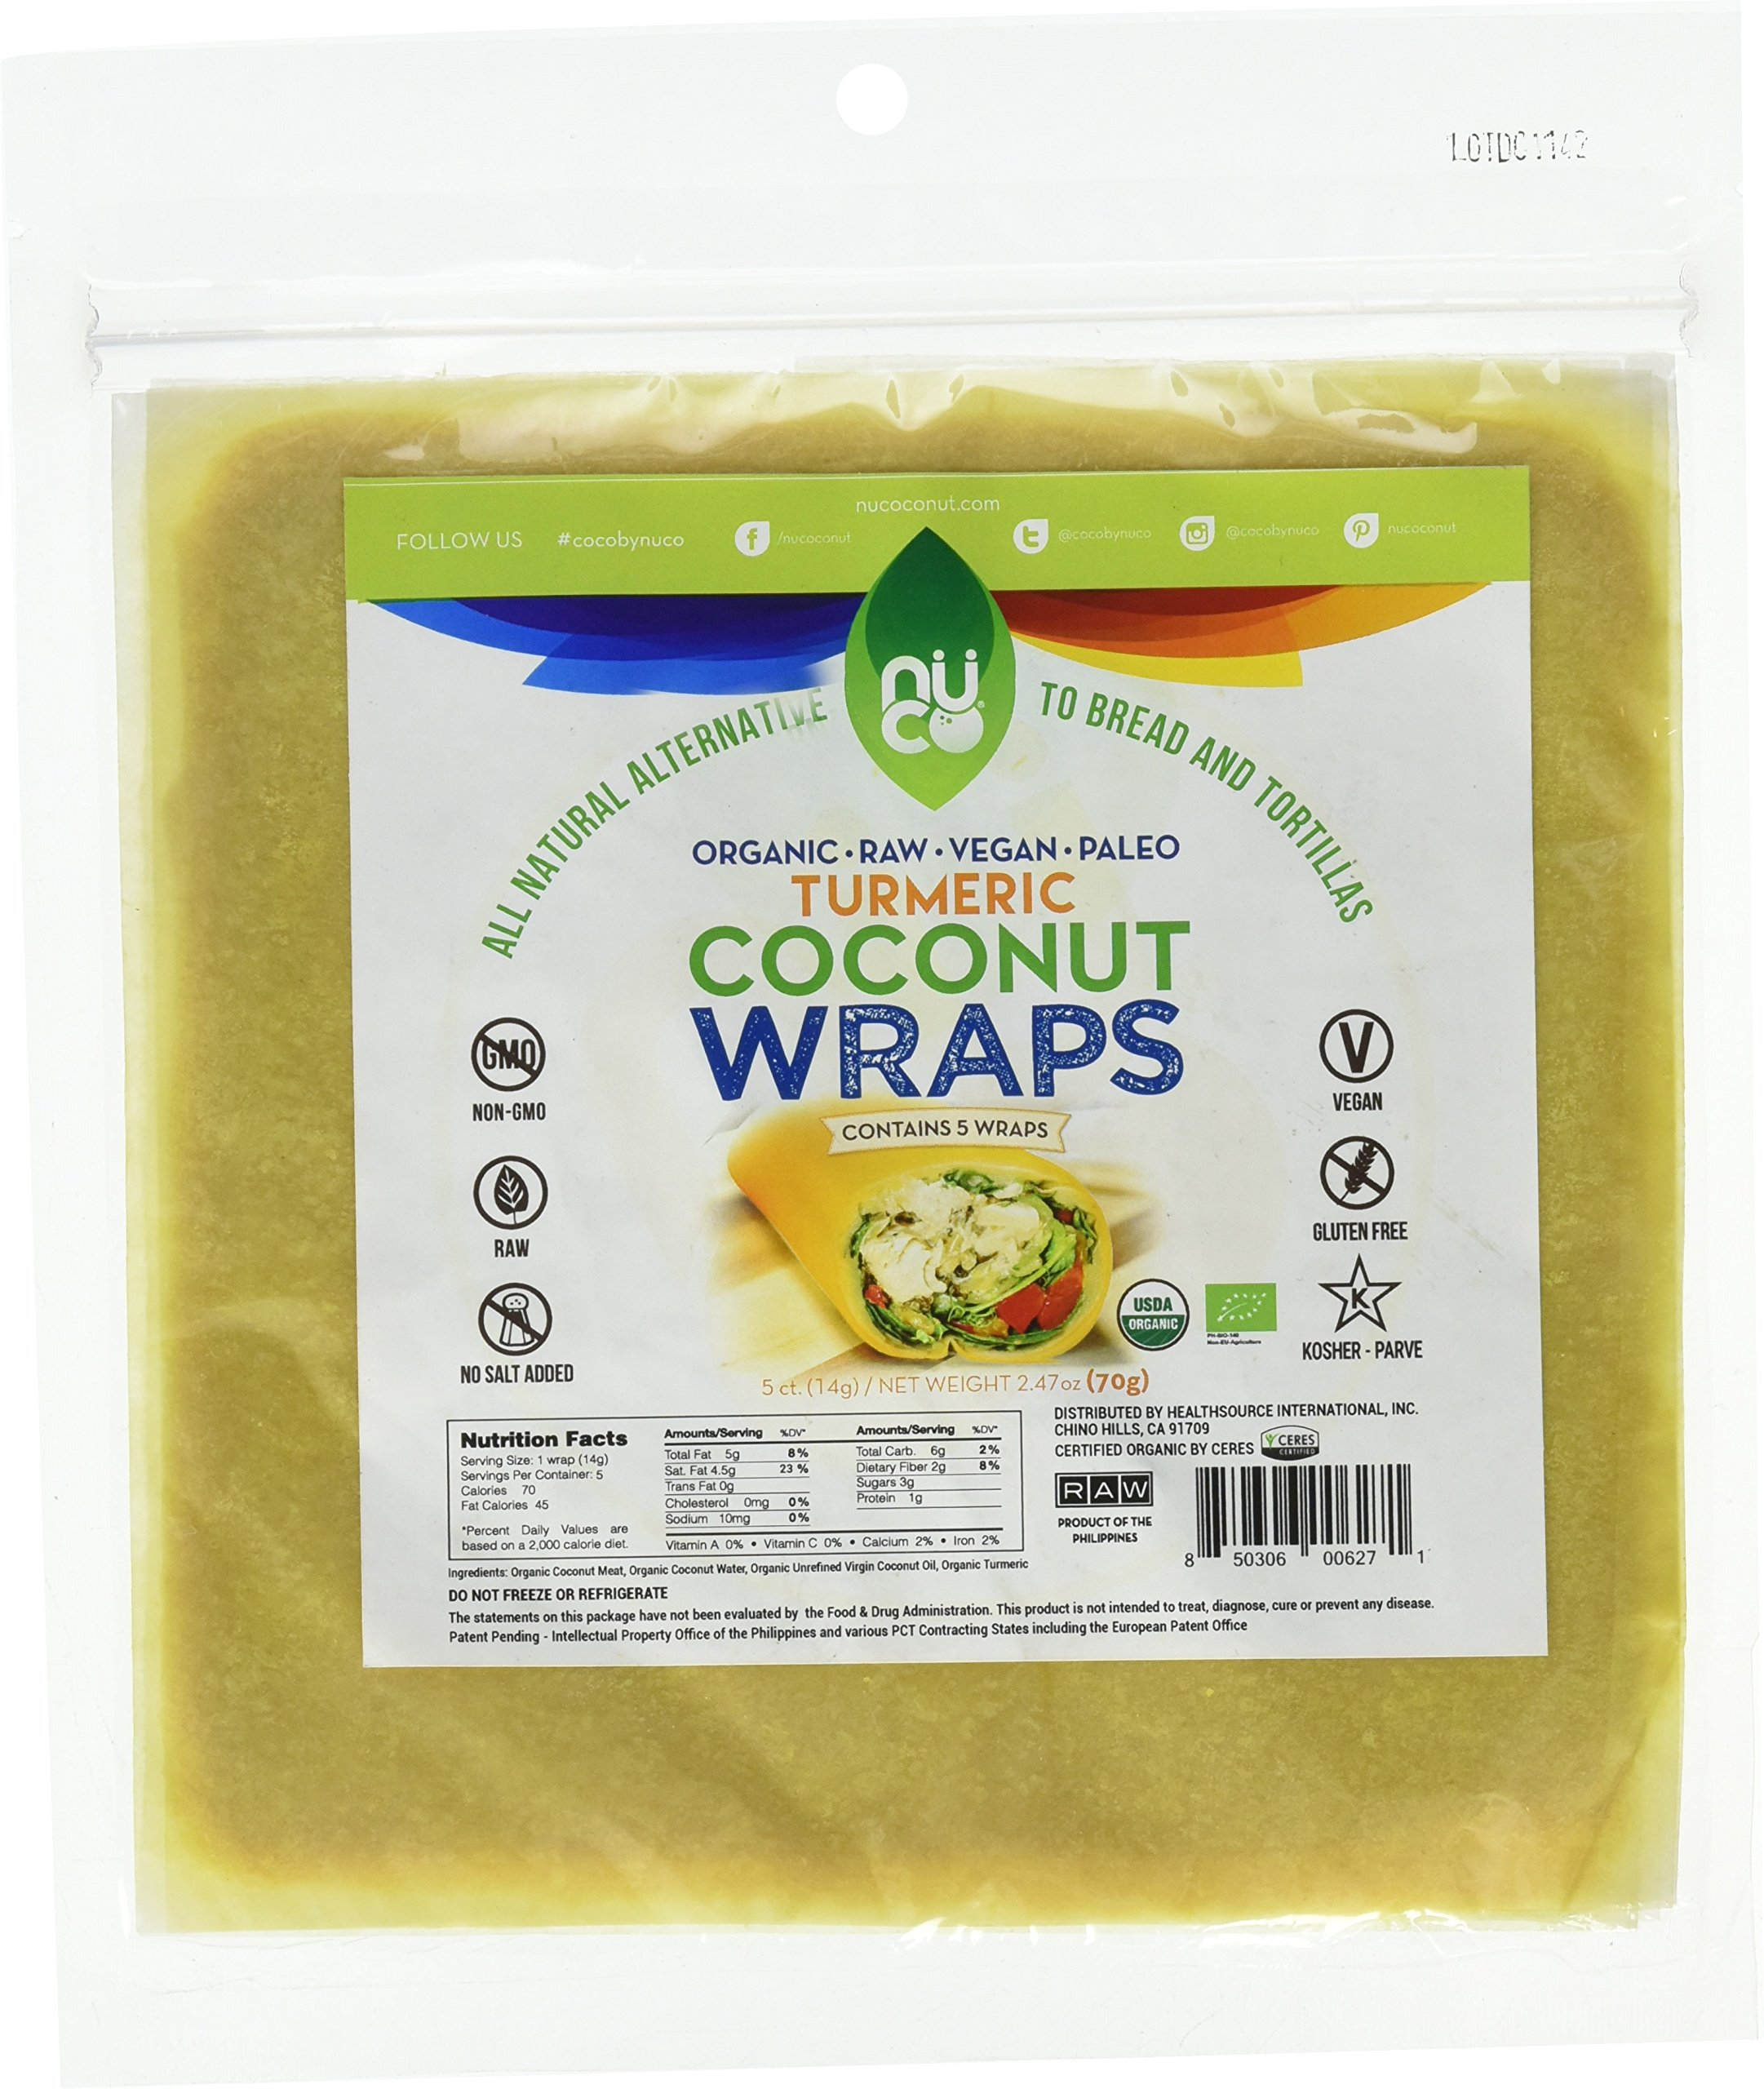 NUCO Certified ORGANIC Paleo Gluten Free Vegan Turmeric Coconut Wraps, 5 Count (One Pack of Five Wraps)